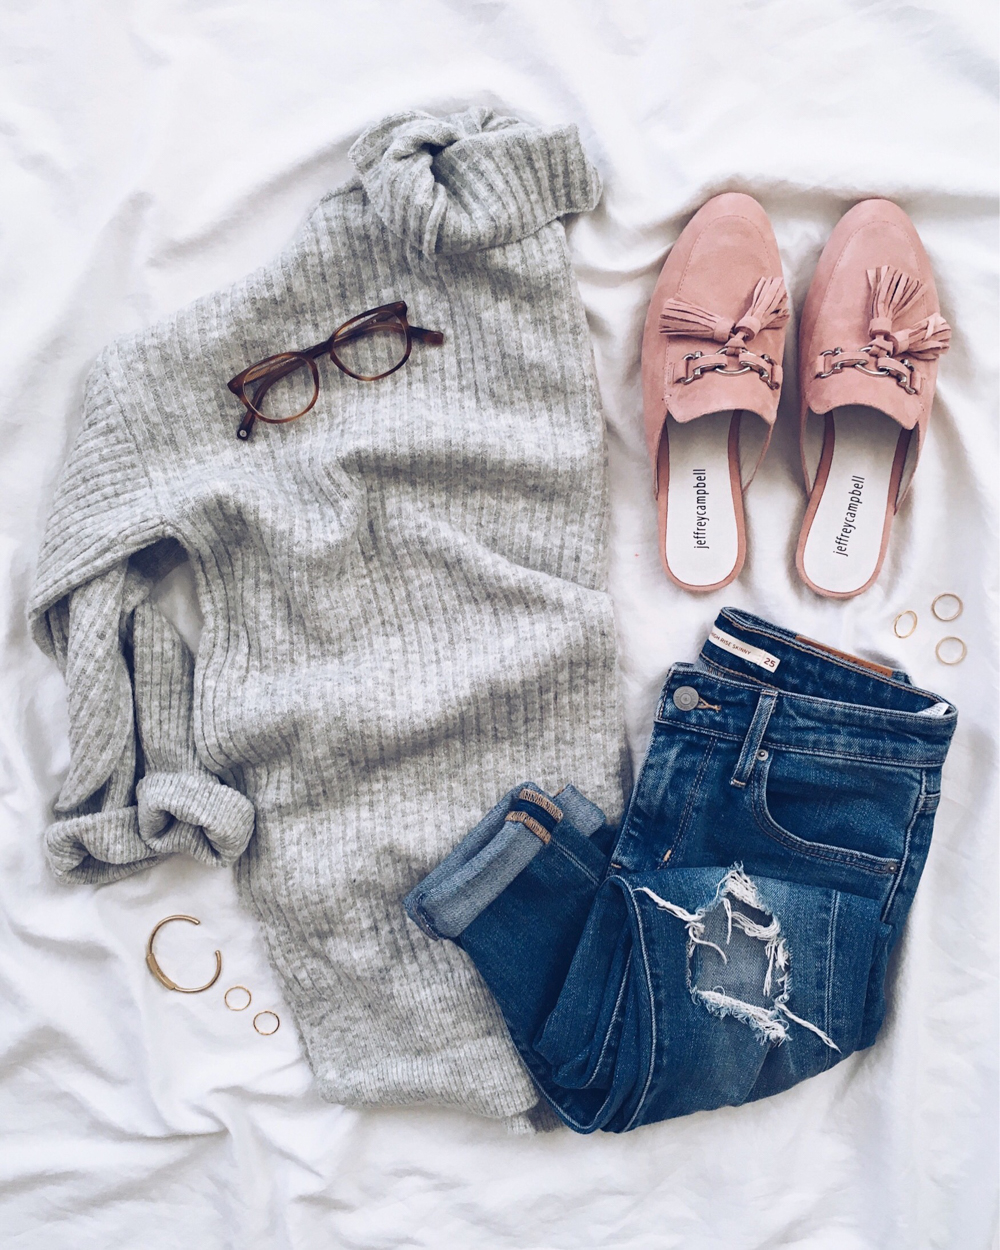 livvyland-blog-olivia-watson-instagram-roundup-grey-sweater-pink-tassel-loafer-slides-jeffrey-campbell